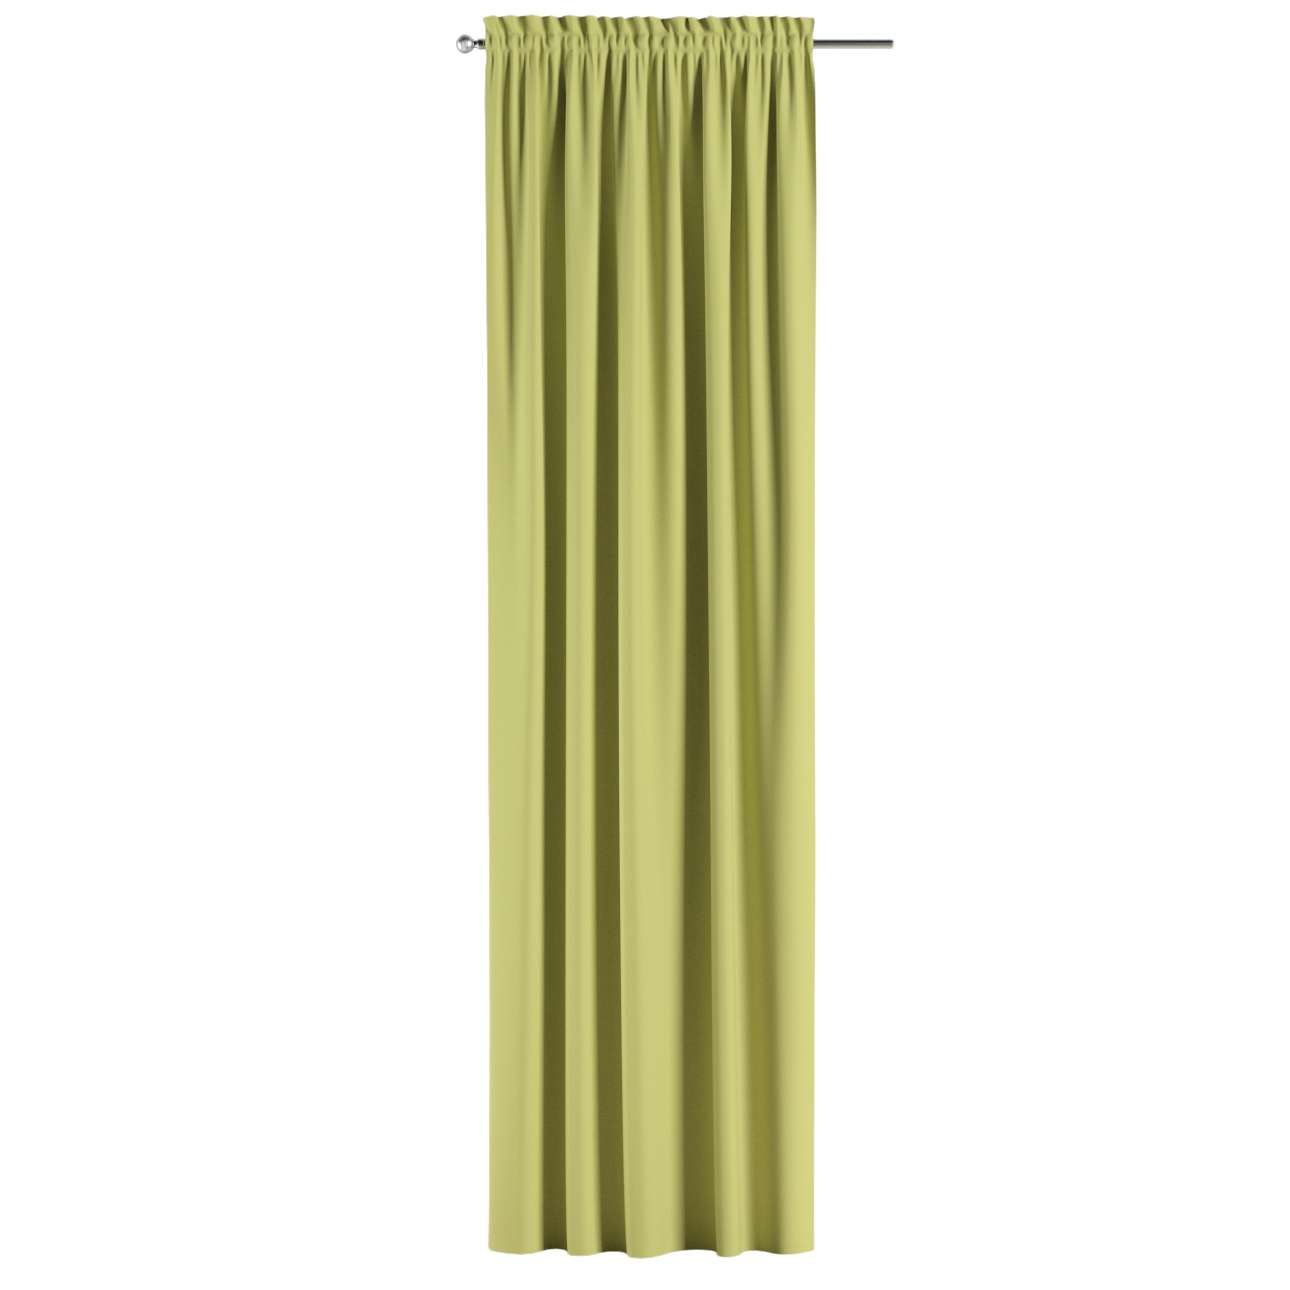 Blackout slot and frill curtains 140 x 260 cm (approx. 55 x 102 inch) in collection Blackout, fabric: 269-17